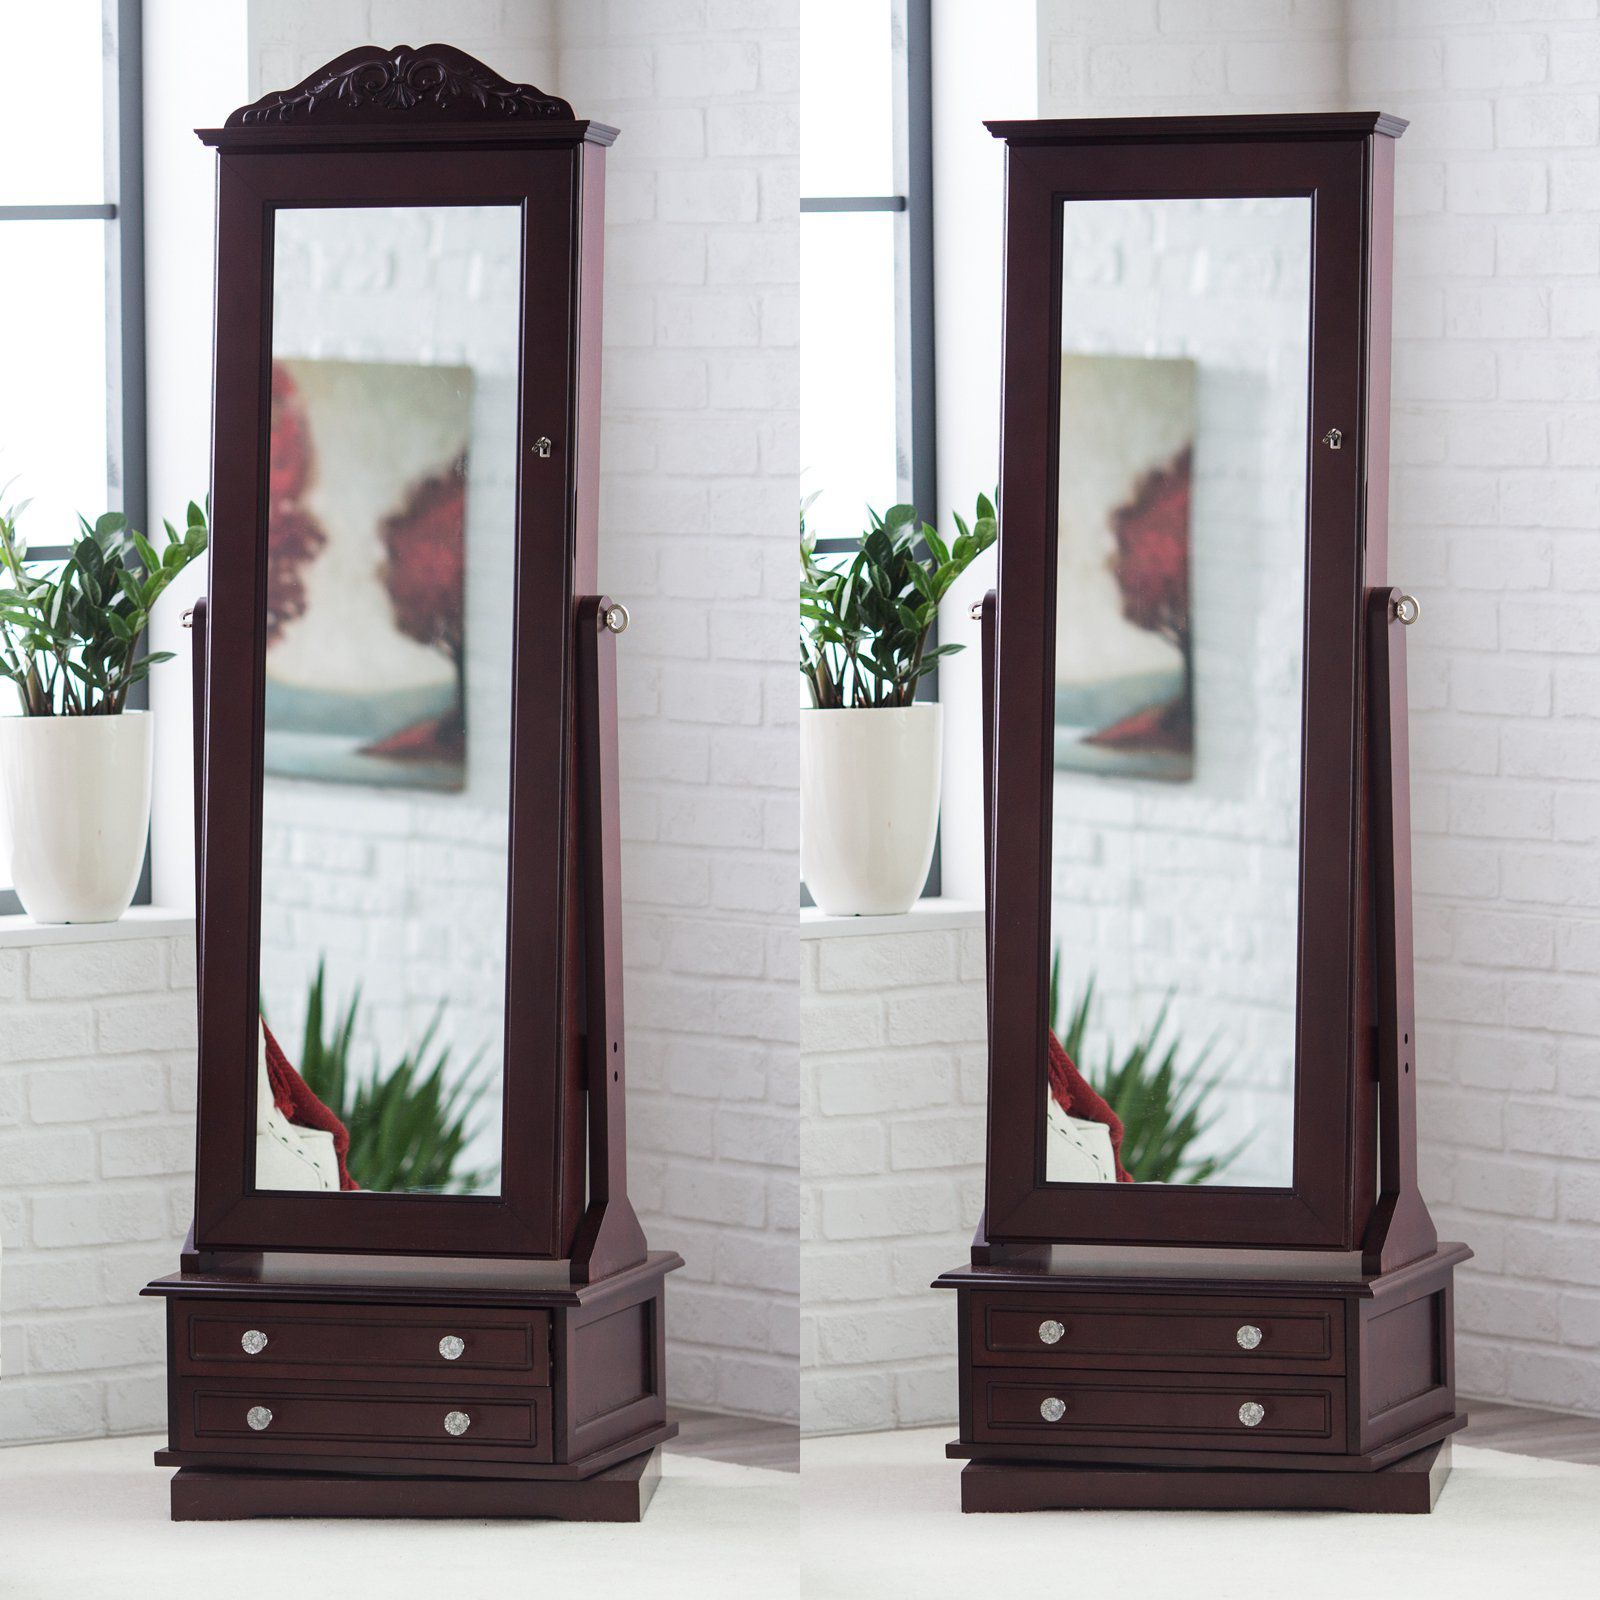 Full-length-mirror-jewelry-armoire-photo-12